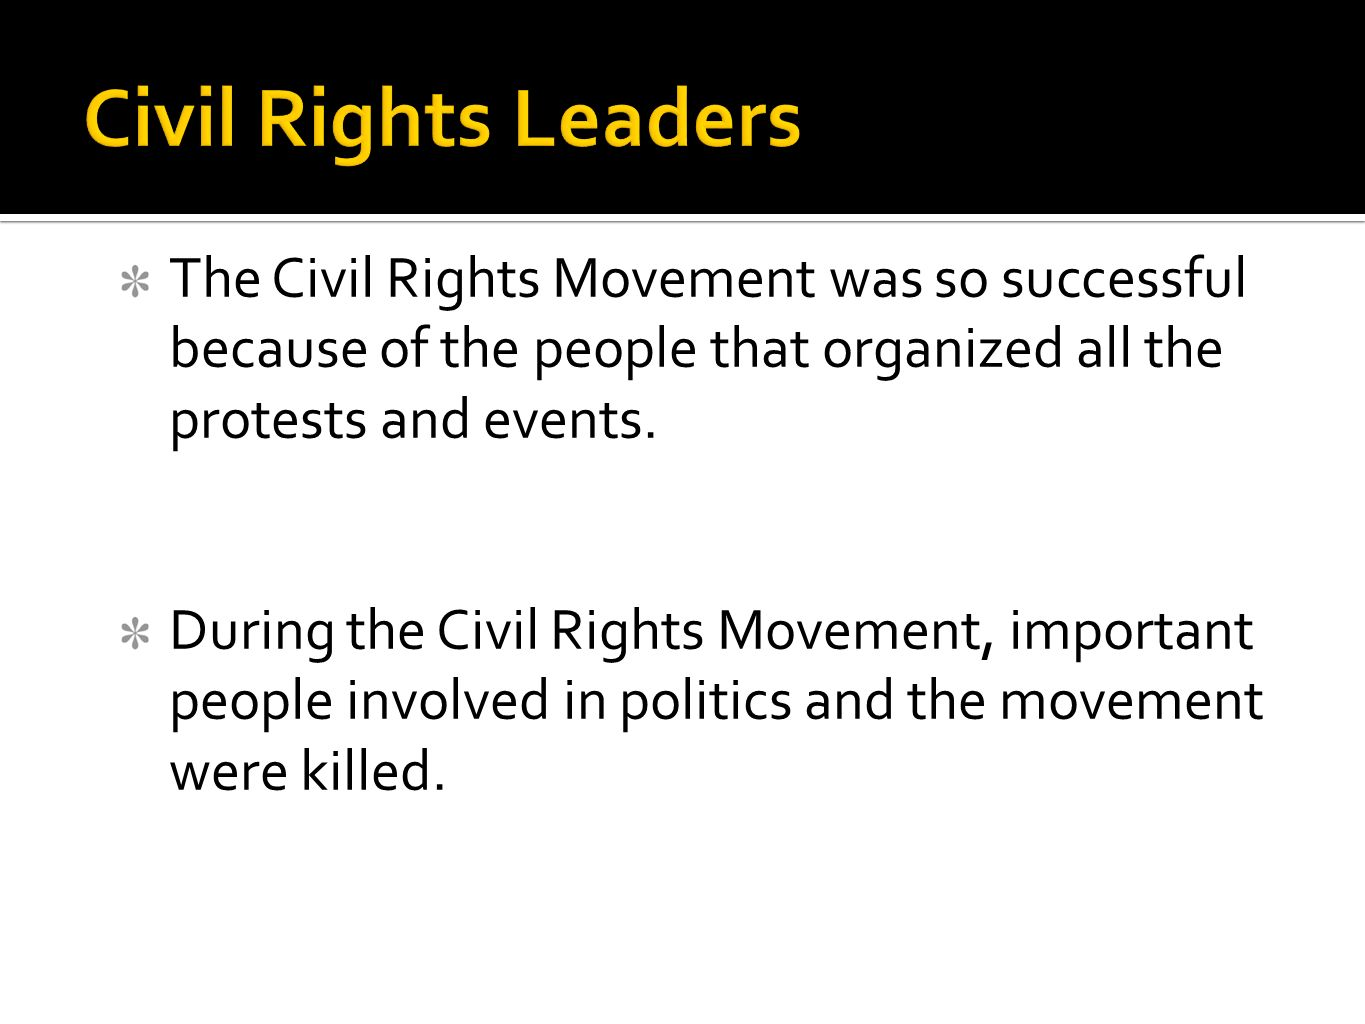 An introduction to the importance of civil rights movements